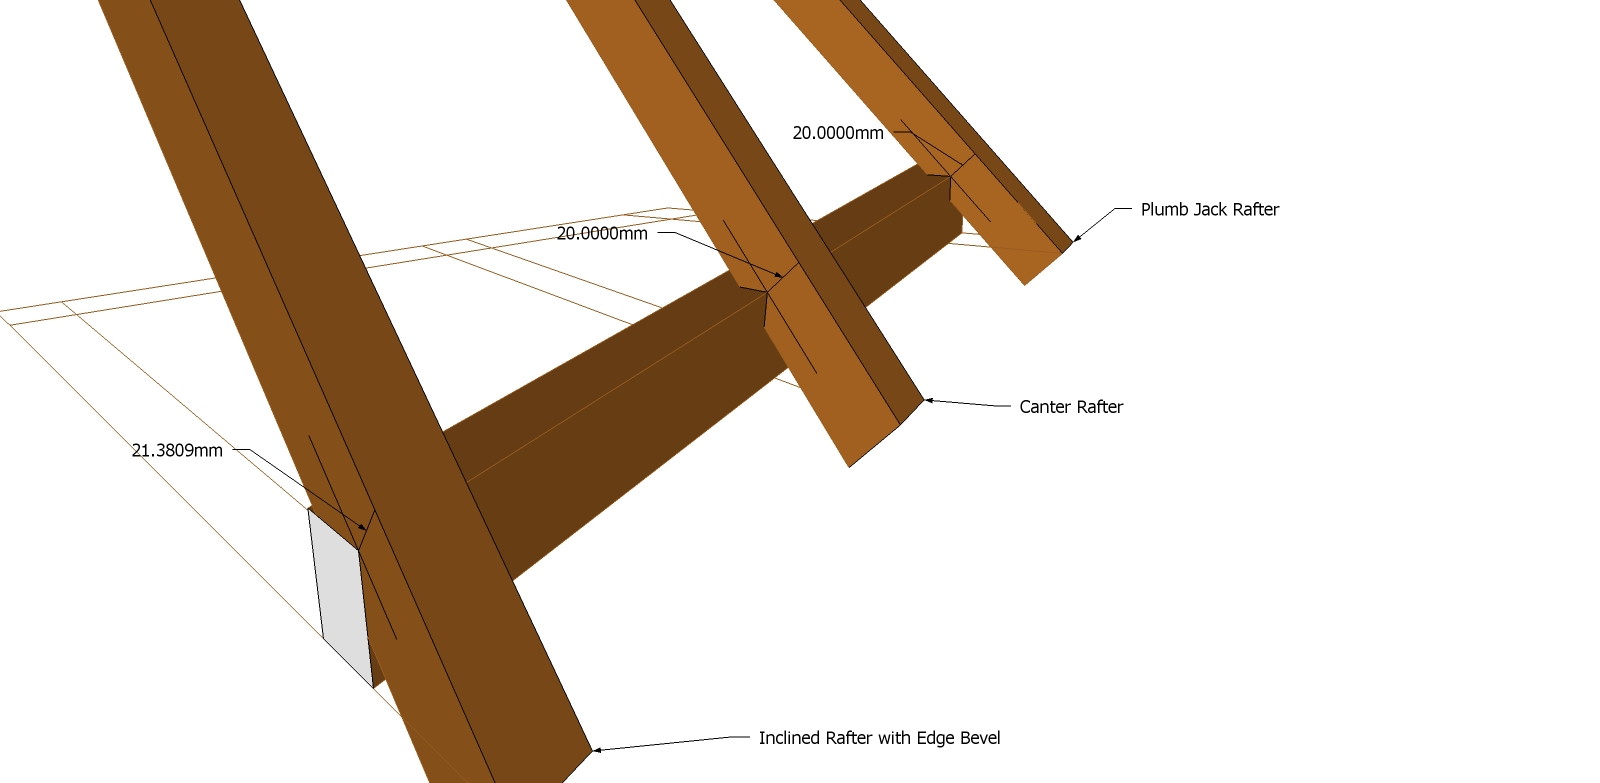 Roof Framing Geometry Rising Purlin With Rafter Seat Cuts